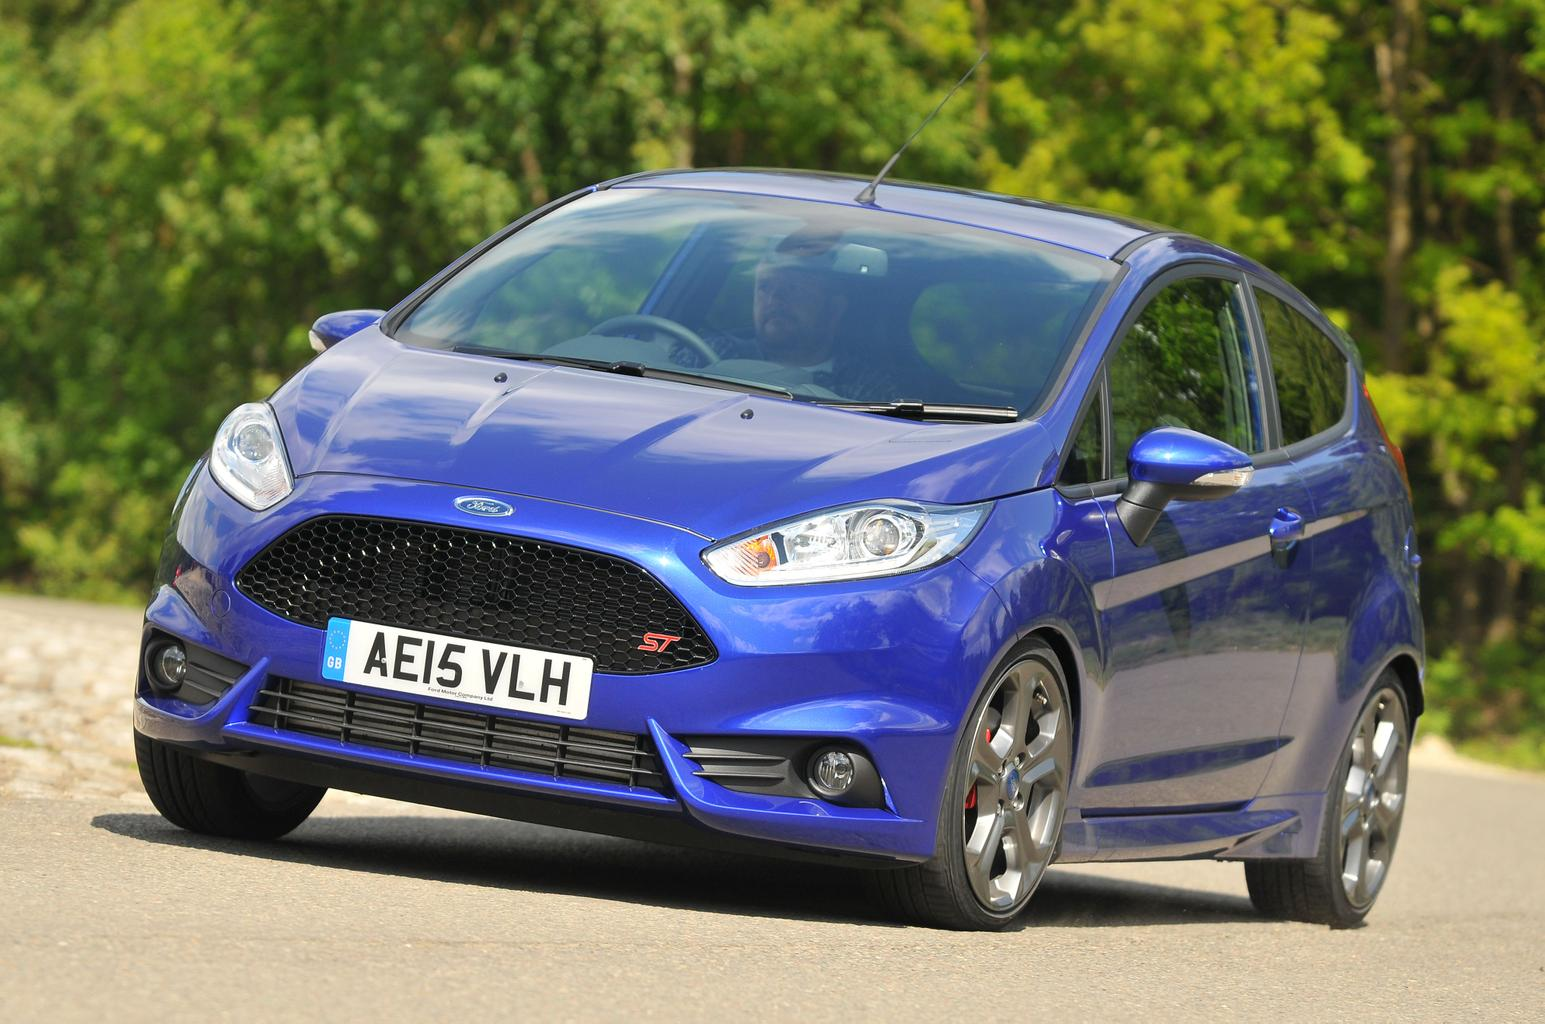 Used test: Ford Fiesta ST vs Vauxhall Corsa VXR